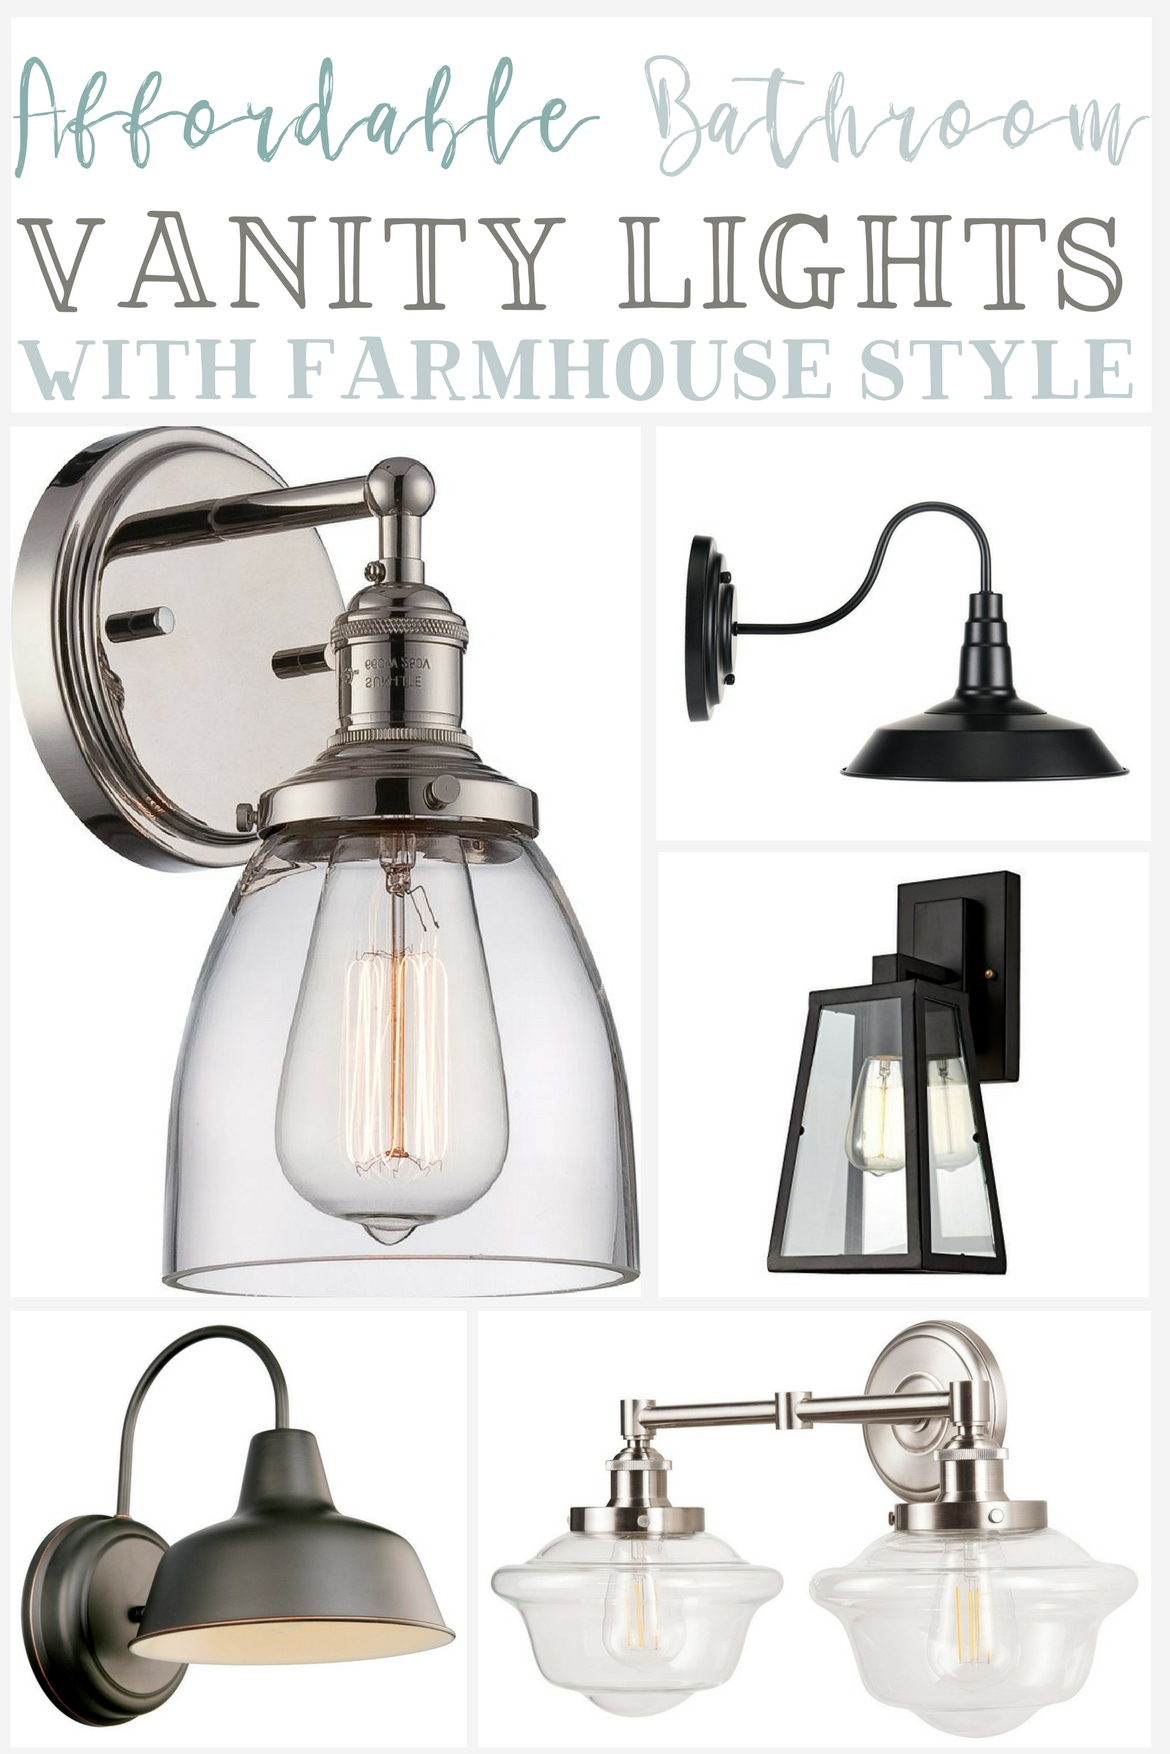 I Ve Found Some Gorgeous Wall Sconces Exposed Bulb Fixtures Modern Style Sconceultiple My Favorites Include This 2 Light